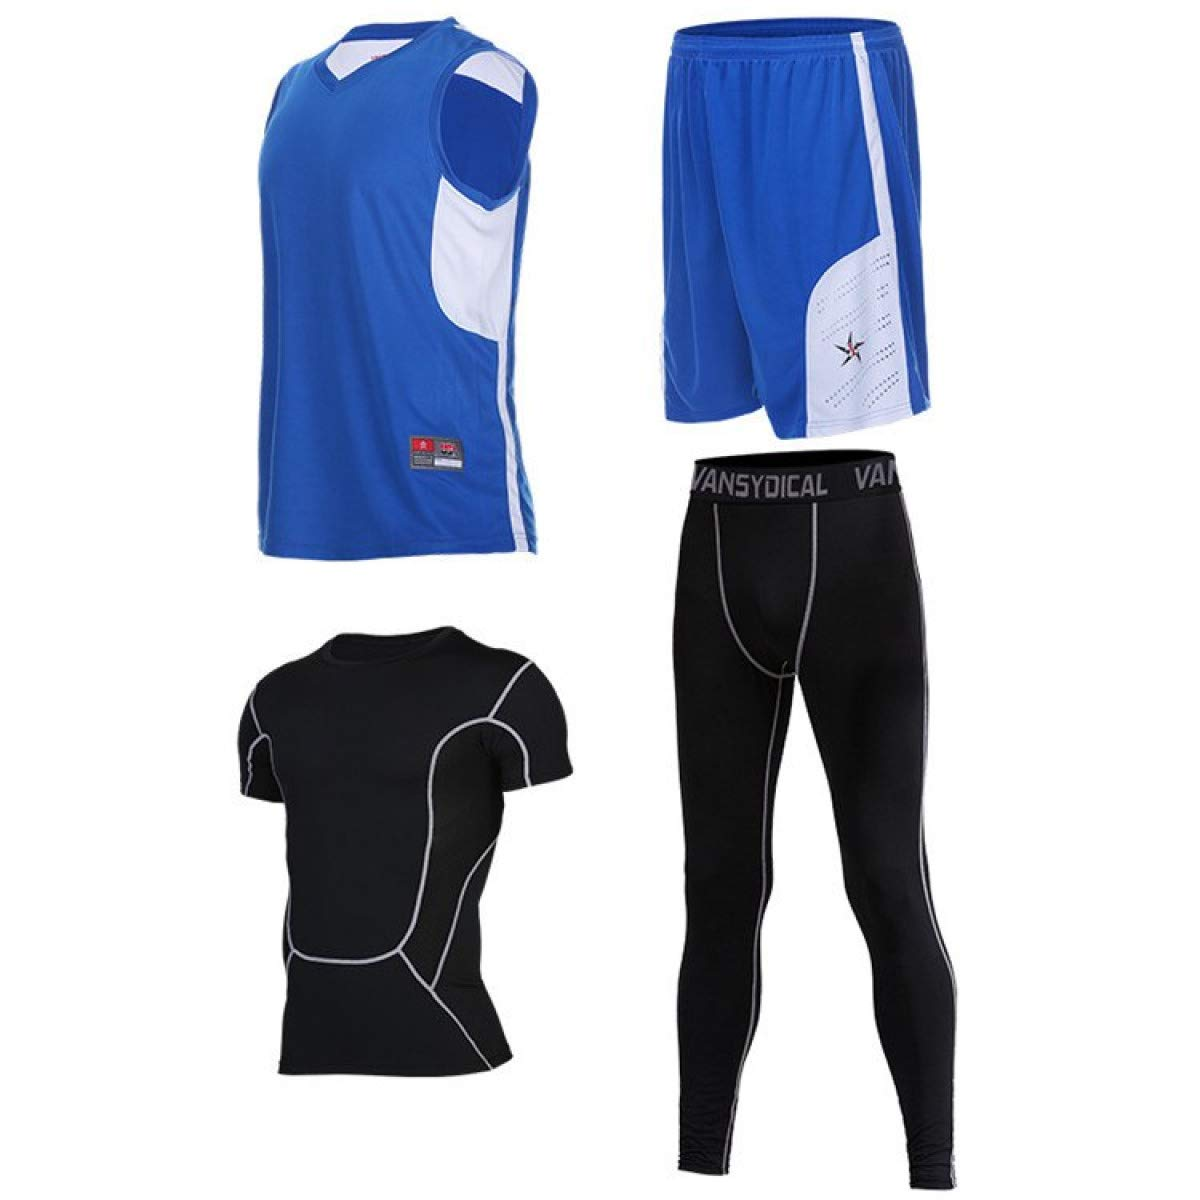 info for 7feae f7663 WEEKEND SHOP 4pcs Men's Basketball Training Suit Basketball ...